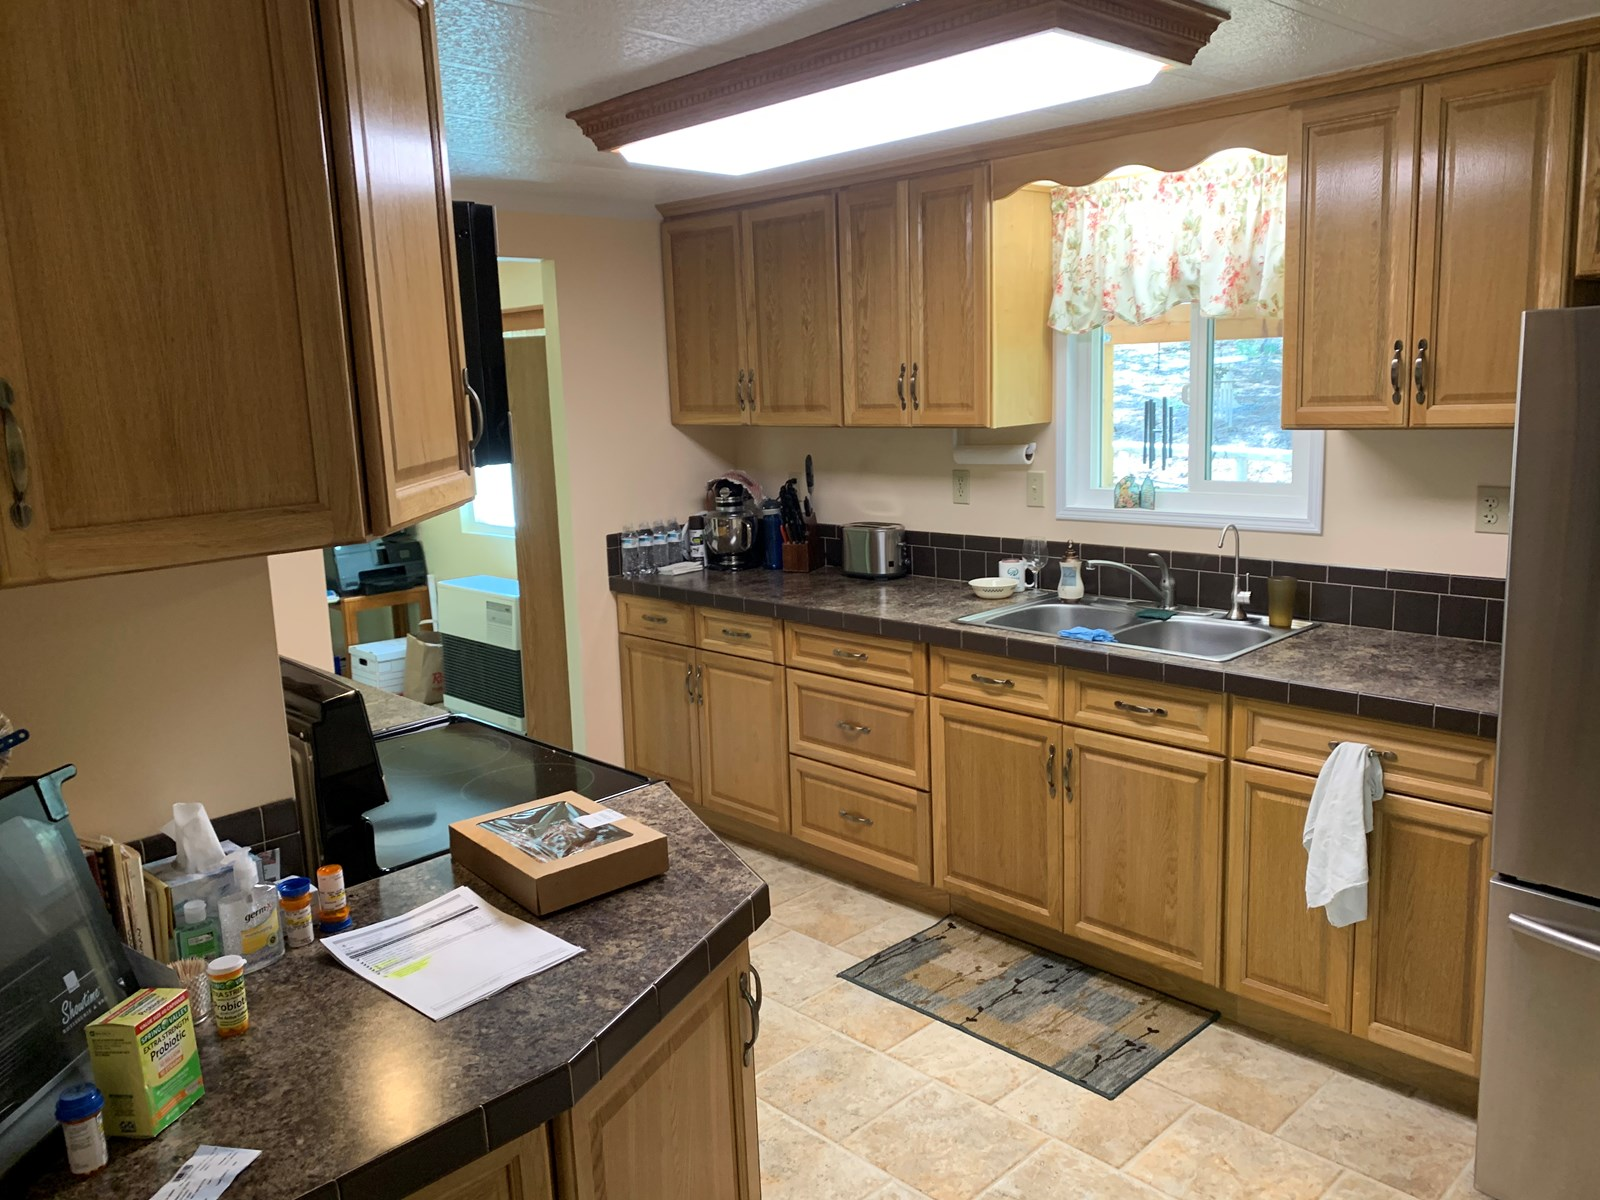 Home for Sale in Hornbrook